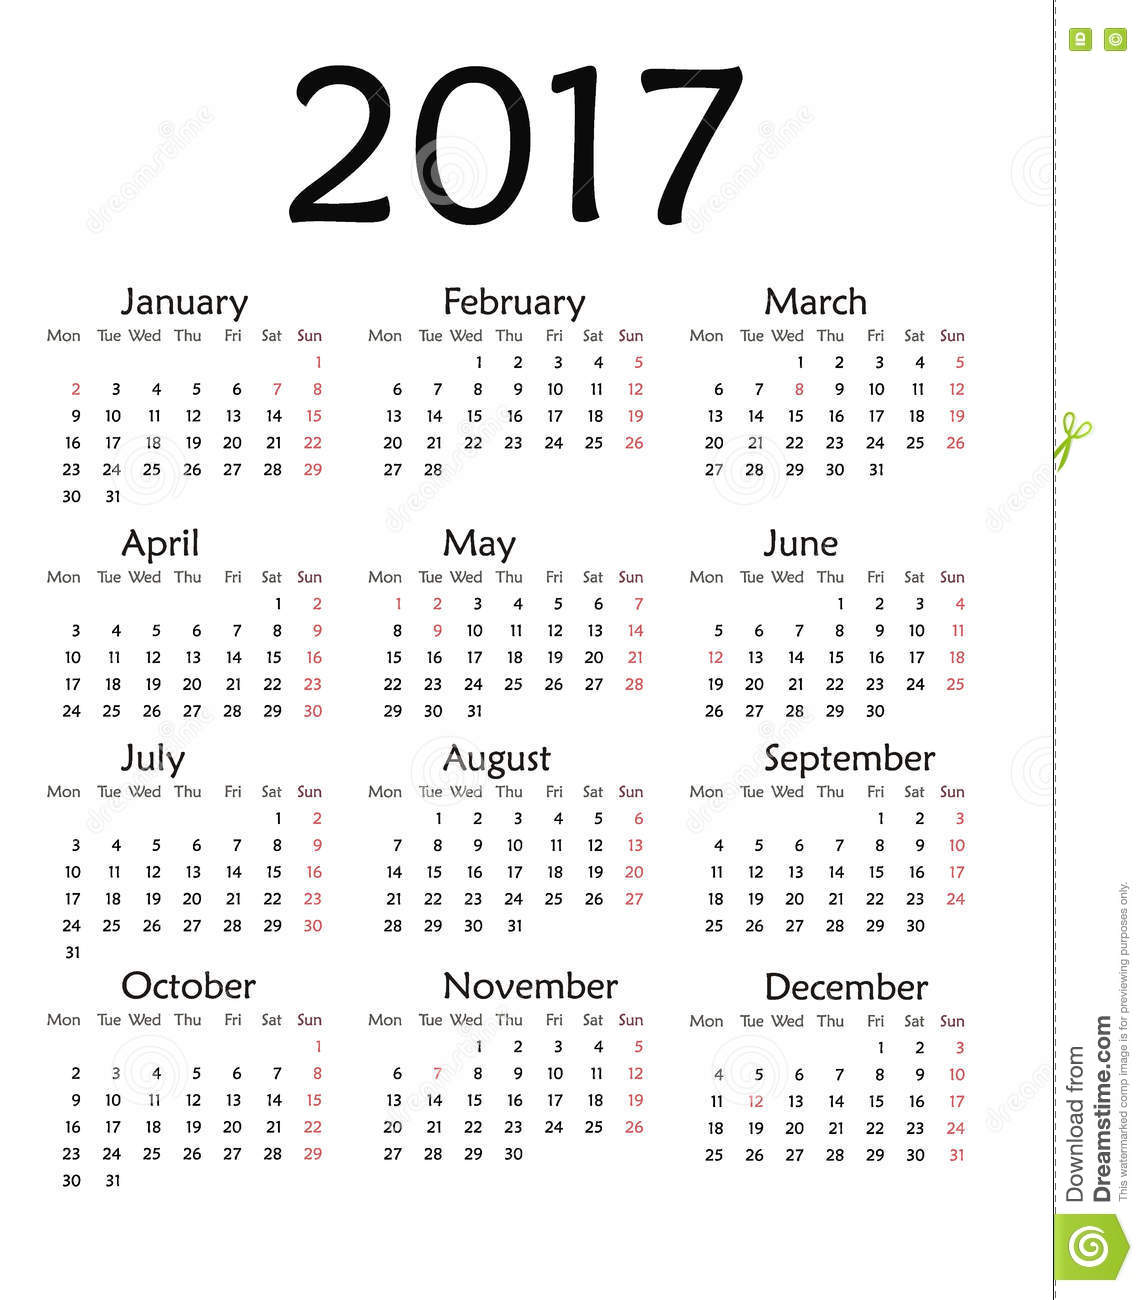 Simple Calendar For 2017 Year . Stock Illustration - Image: 78360099